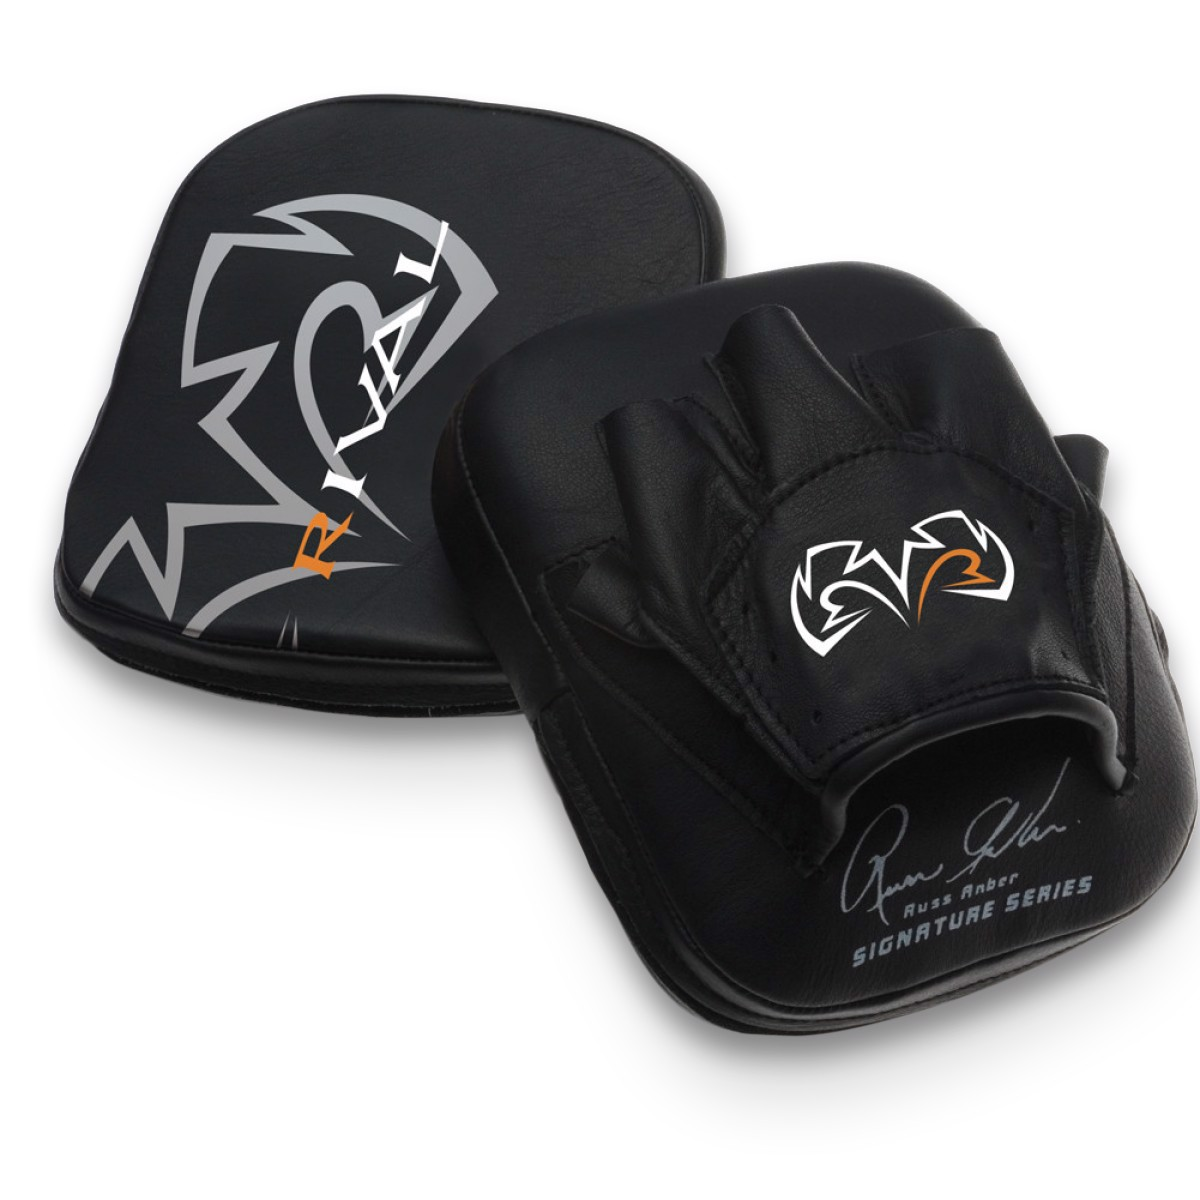 ĐÍCH ĐẤM RIVAL RPM60 WORKOUT NANO PUNCH MITTS